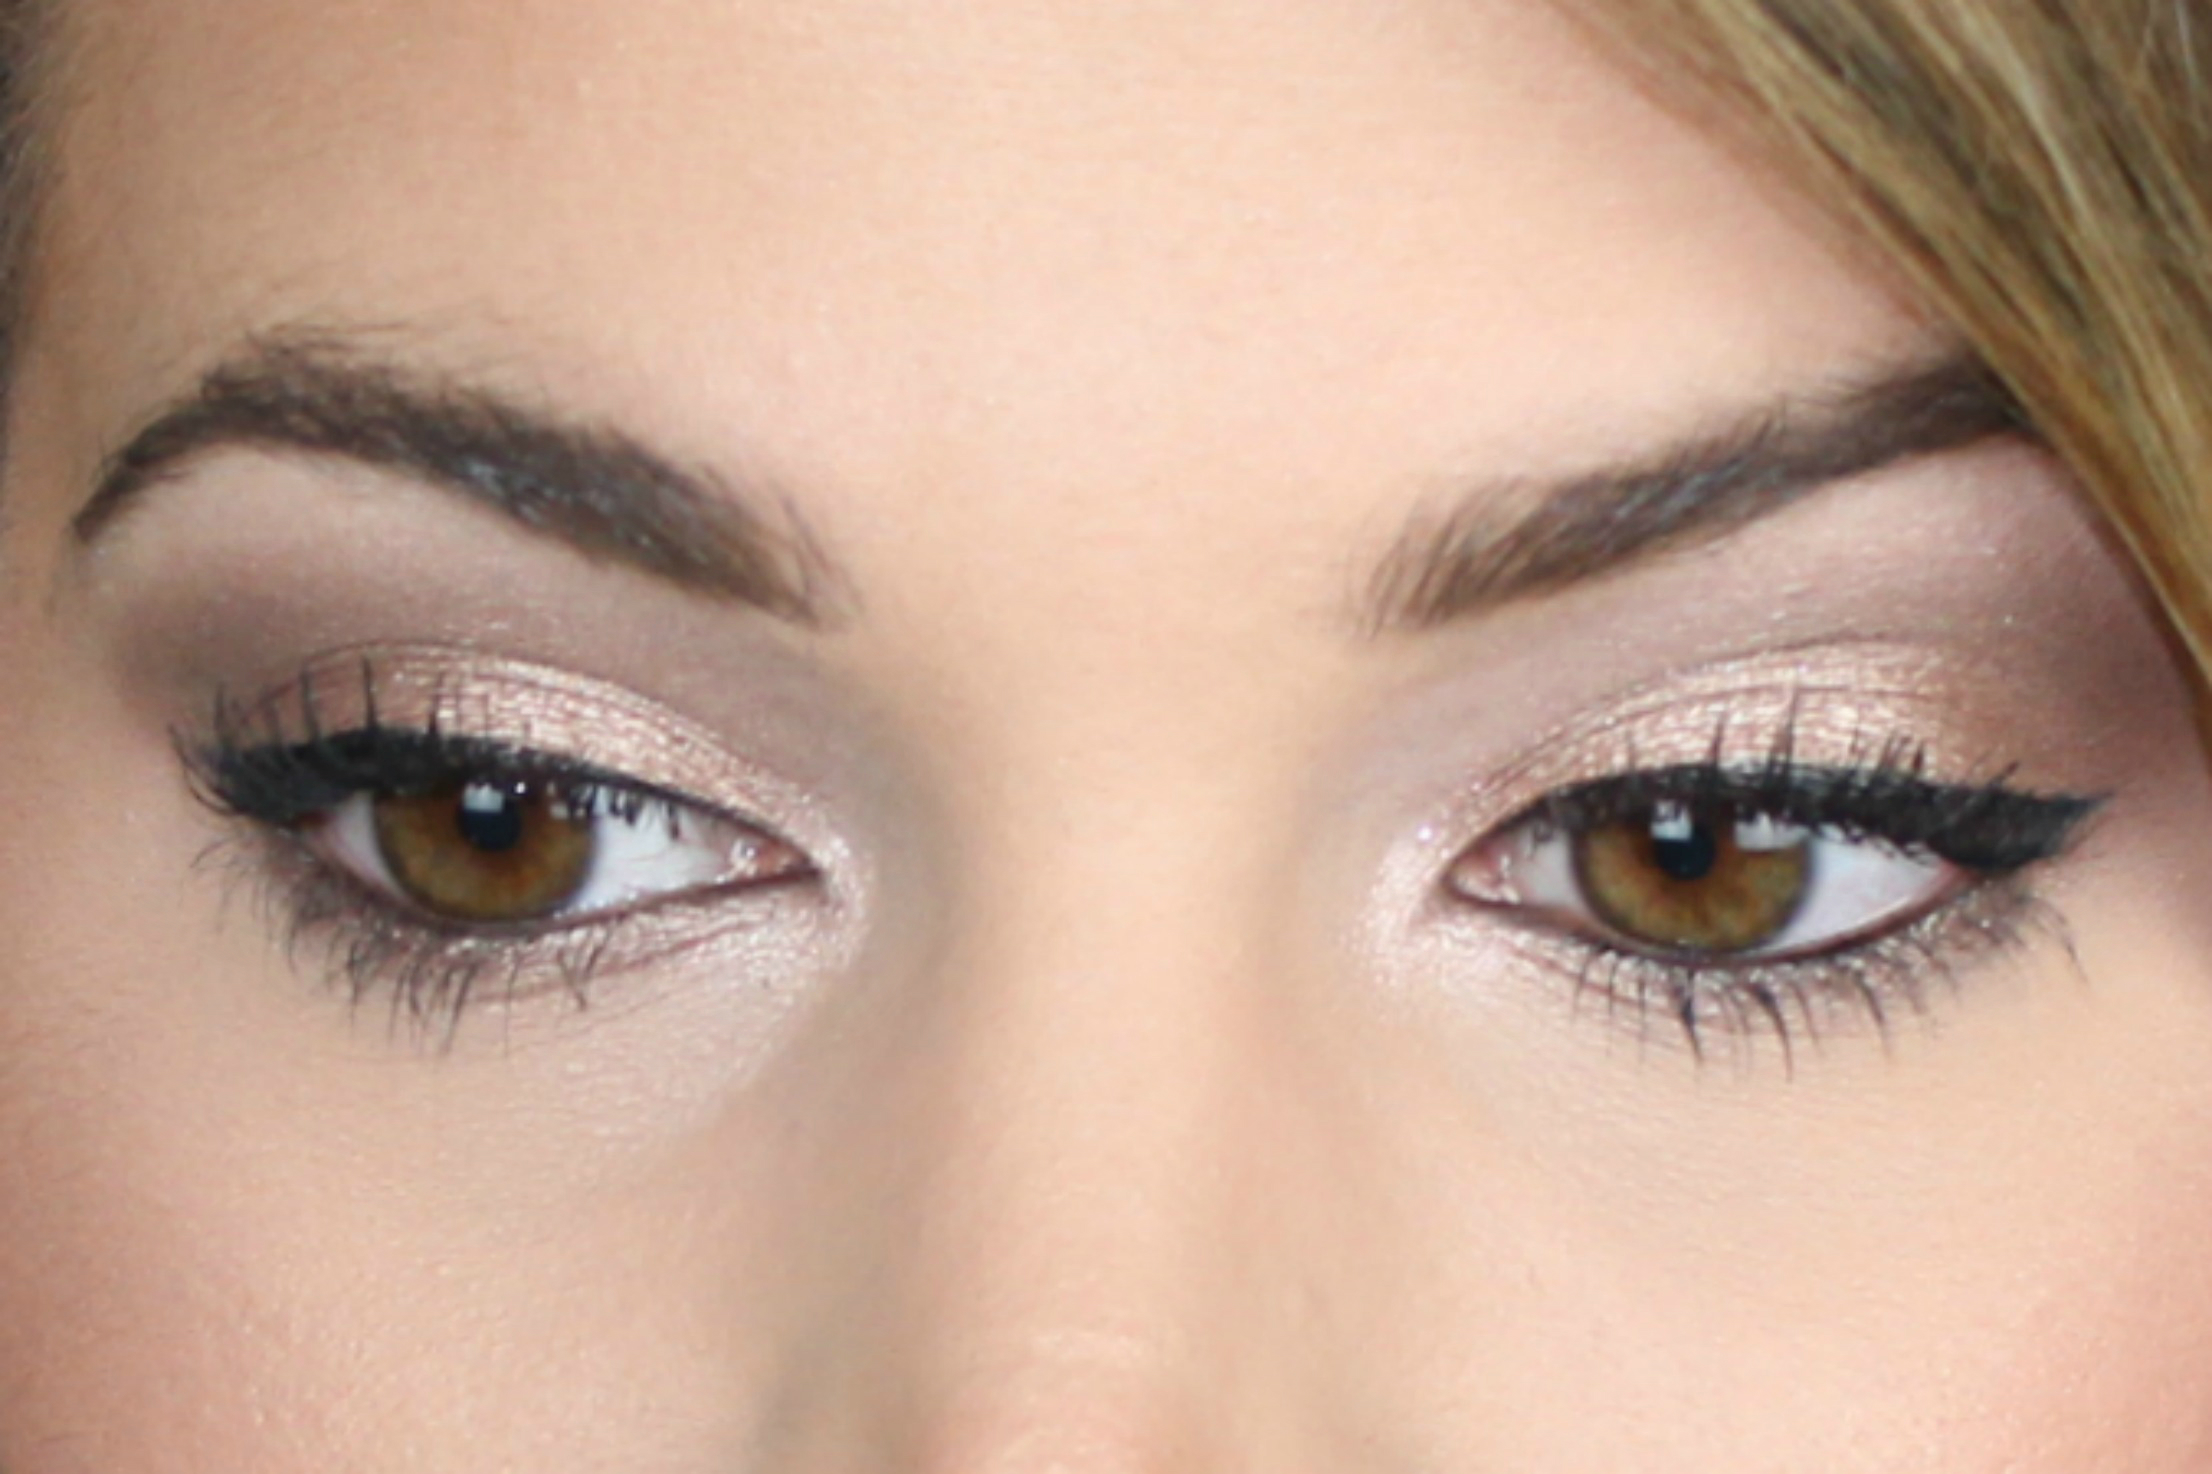 Easy Urban Decay Naked Palette looks super natural look using Sidecar, Naked and Buck on brighterdarling.com